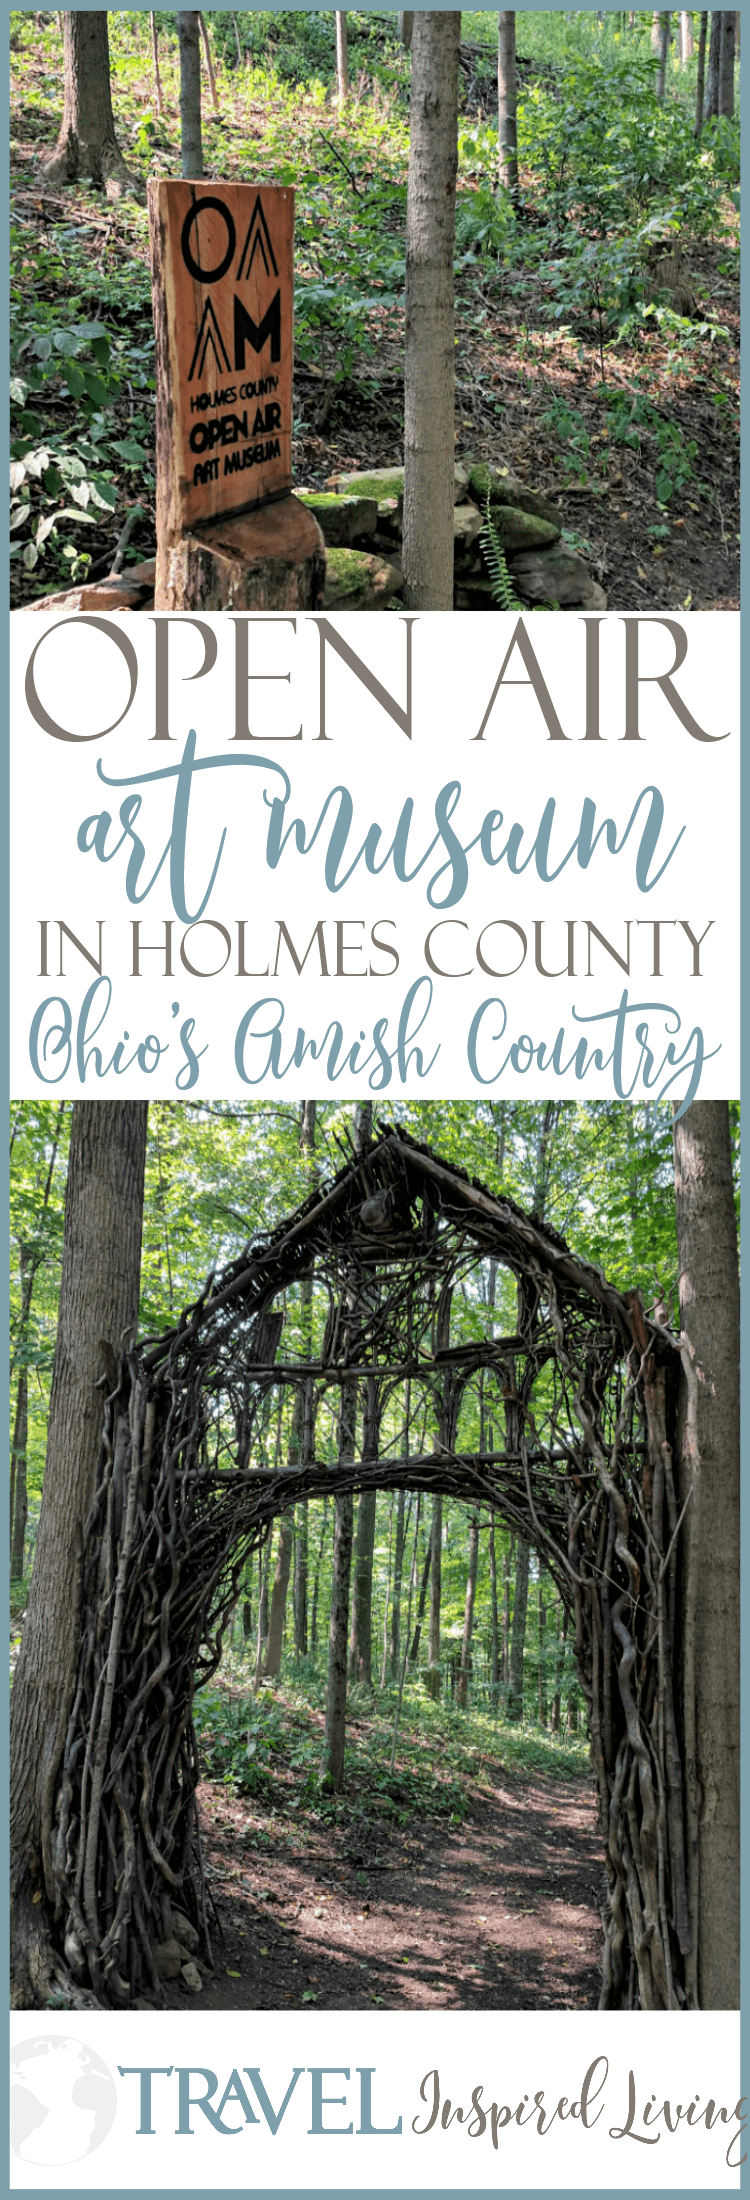 The Open Air Art Museum in Holmes County is in Ohio's Amish Country